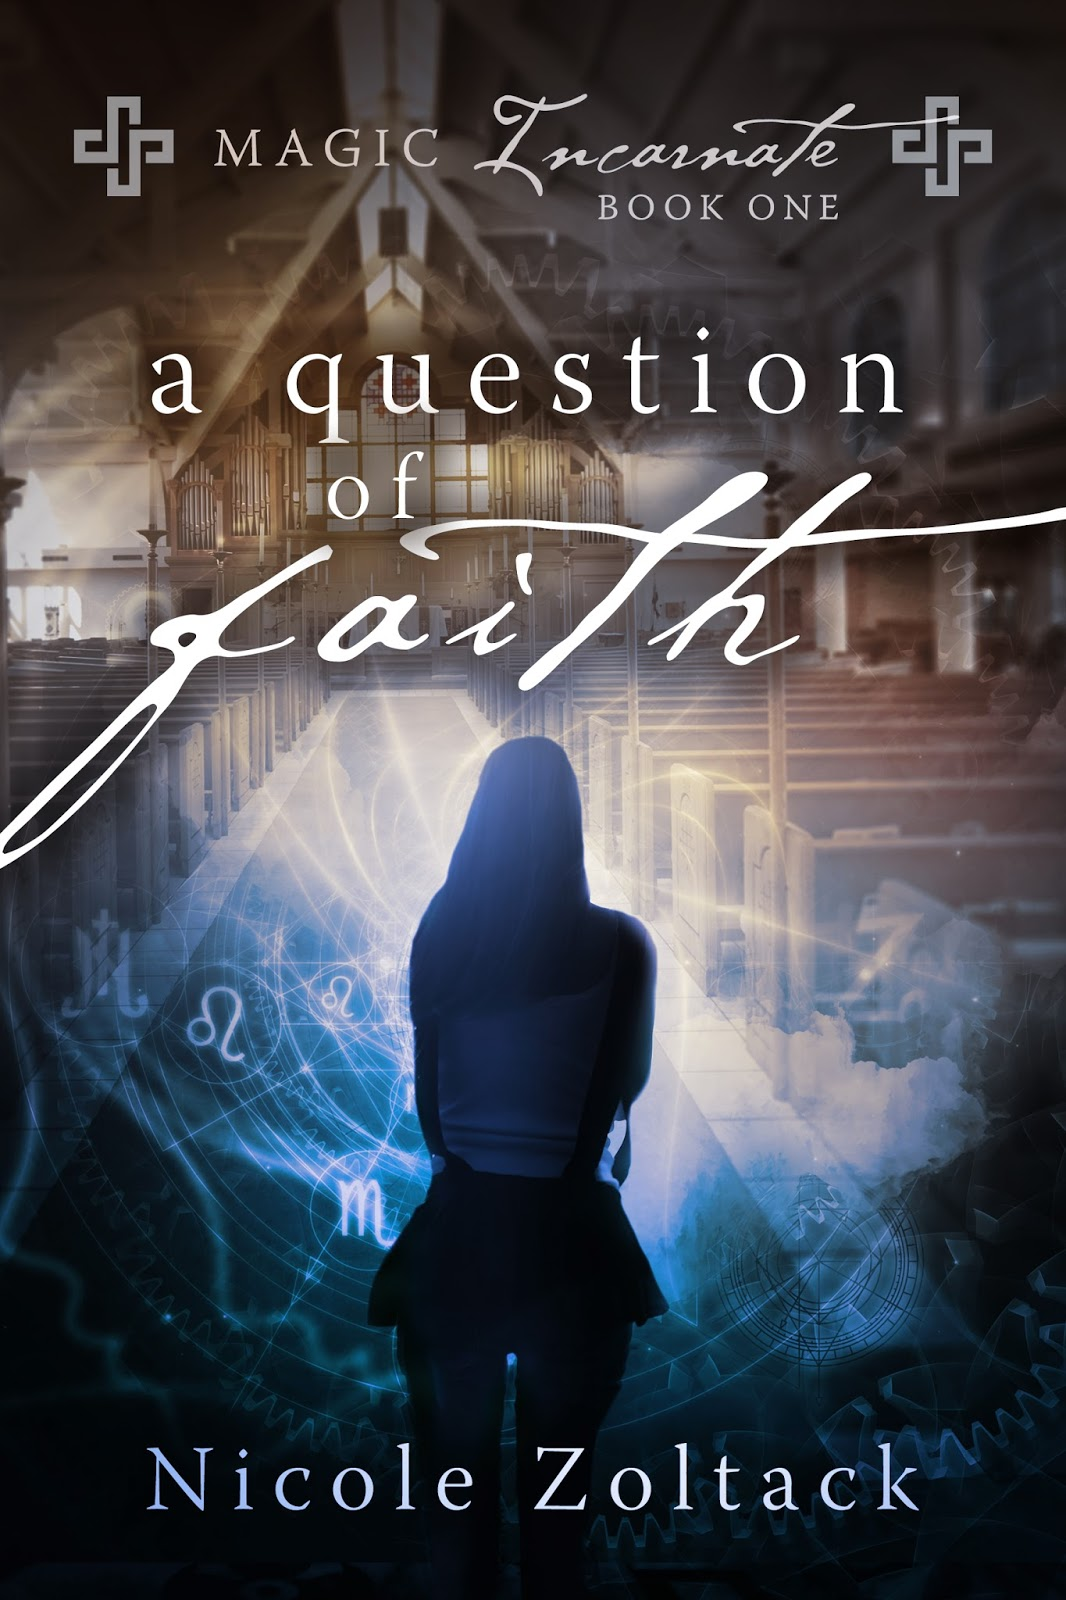 question and faith Questions answered in the last 24 hours post a question to any of our catholic expertsthey'll answer as soon as possible, and your question will appear along with the answer in one of the sections listed below.